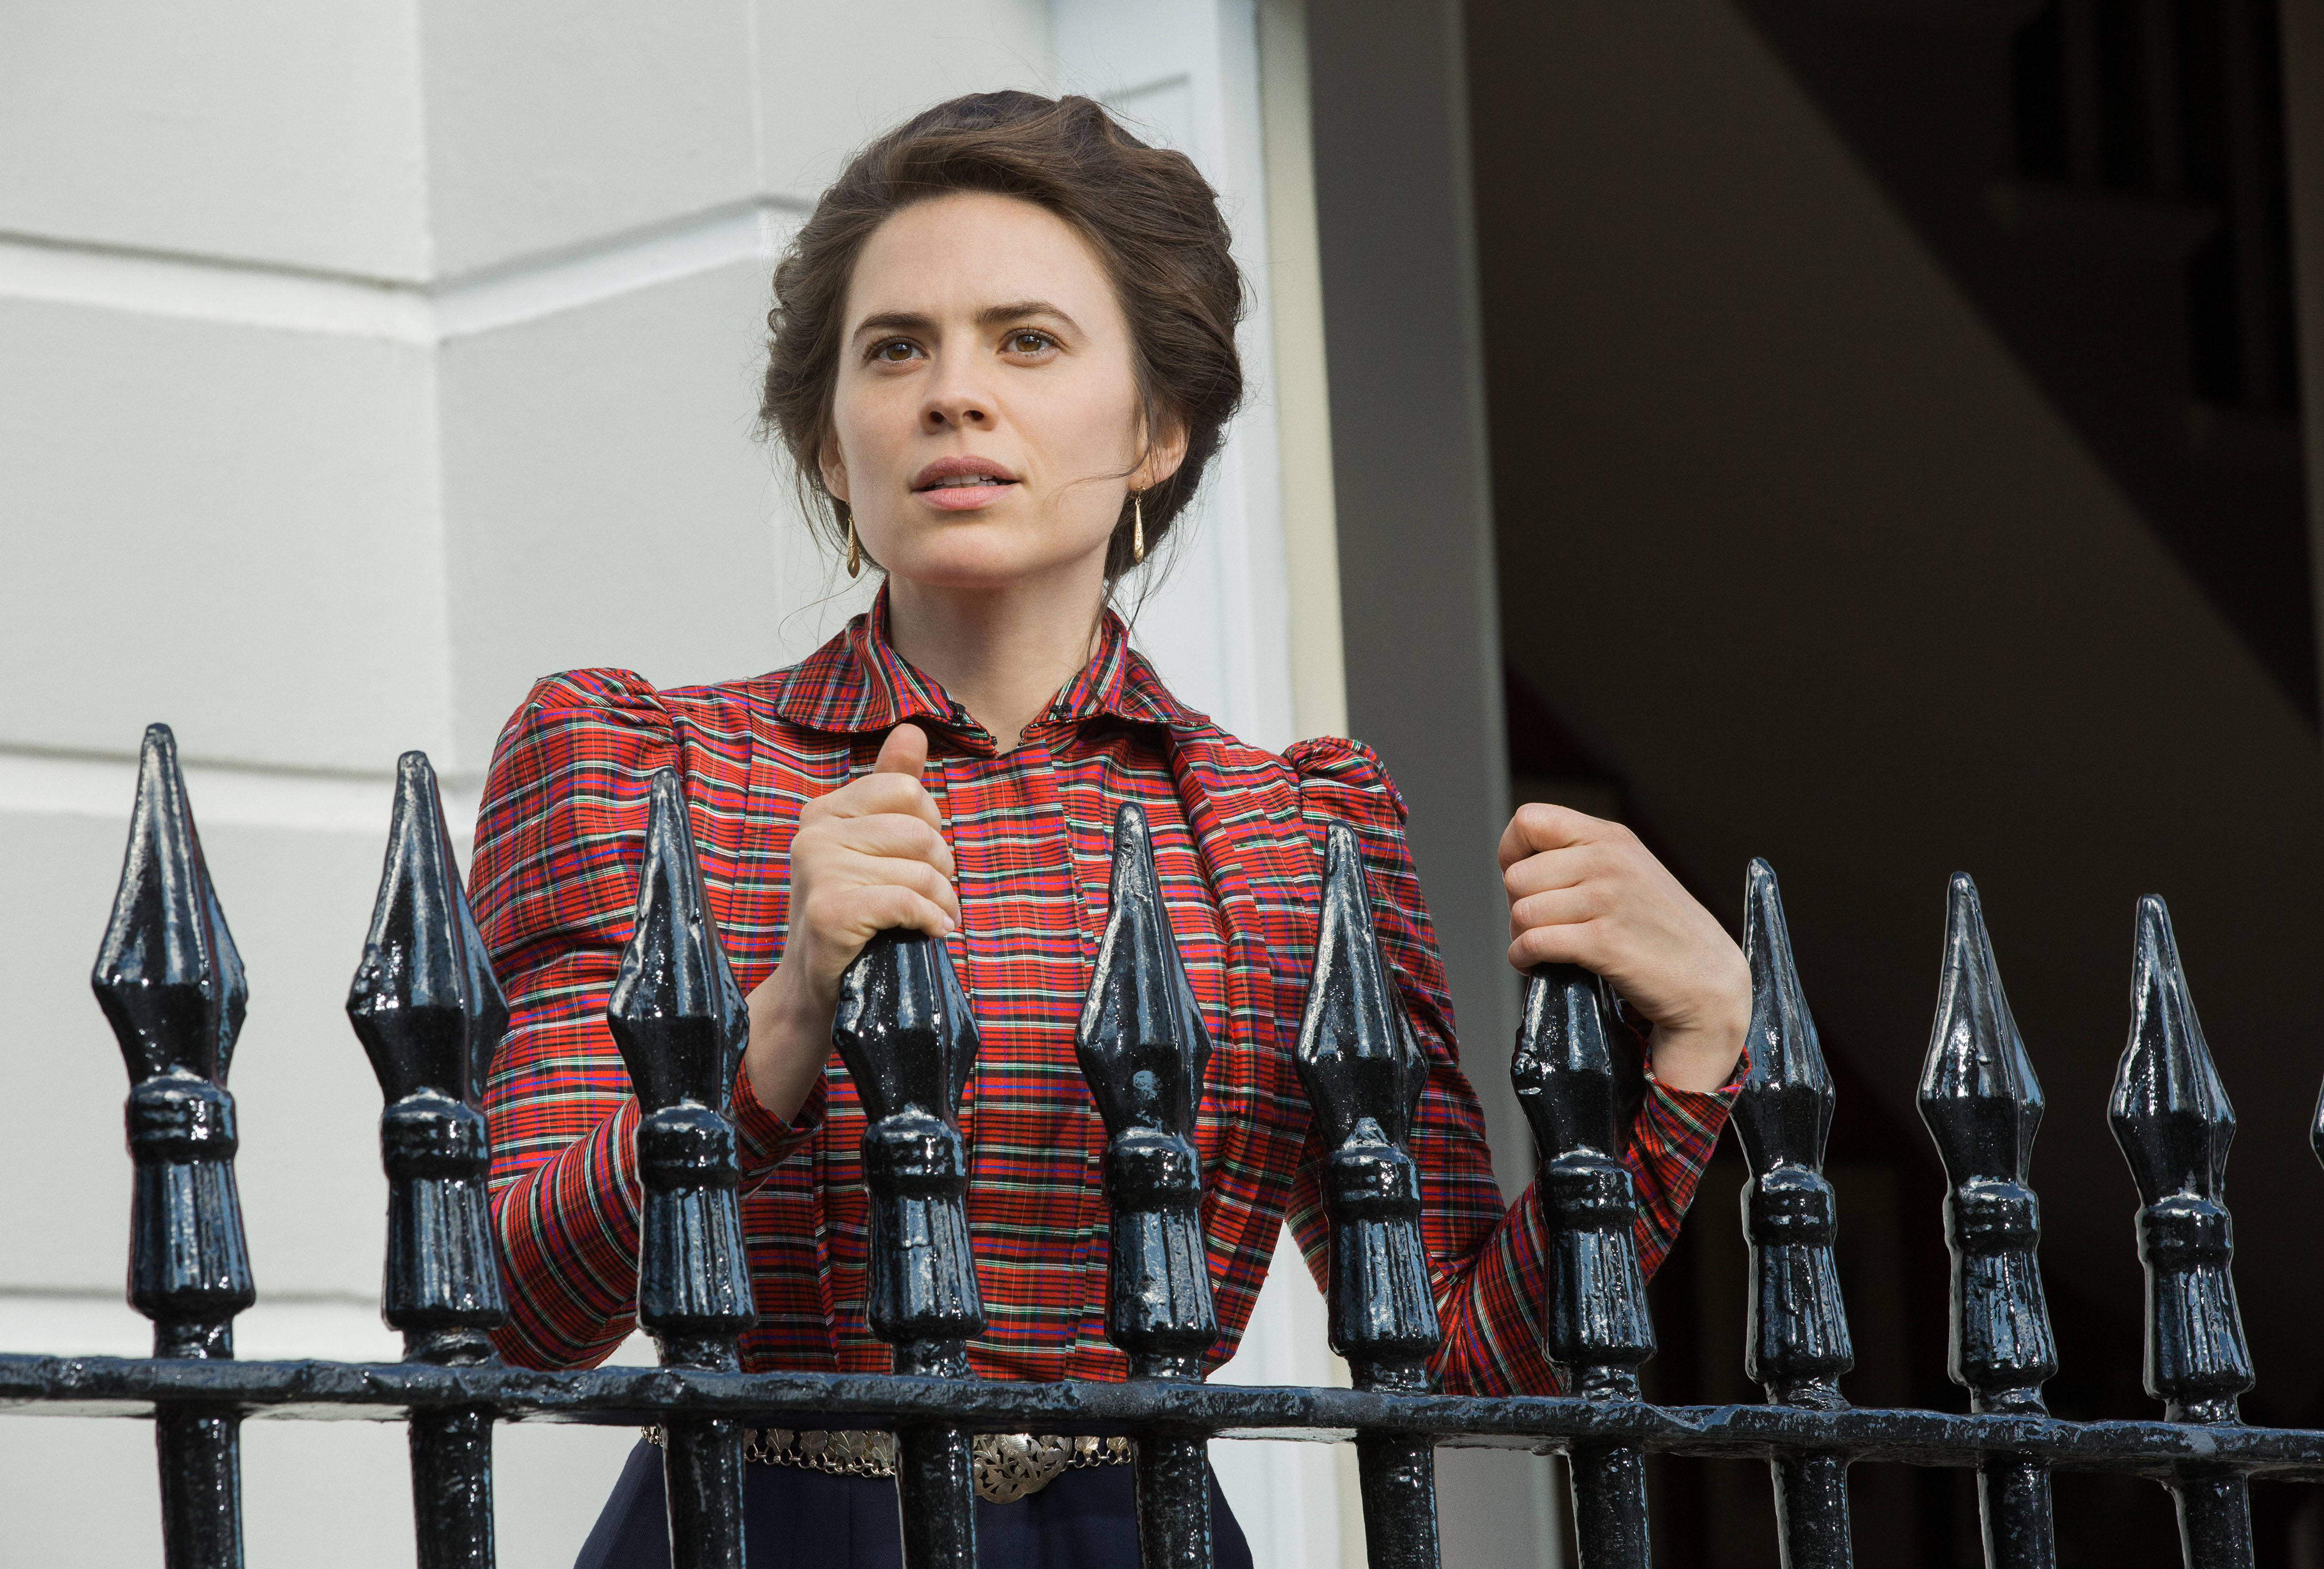 """Howards End has an """"amazing tapestry, says screenwriter"""